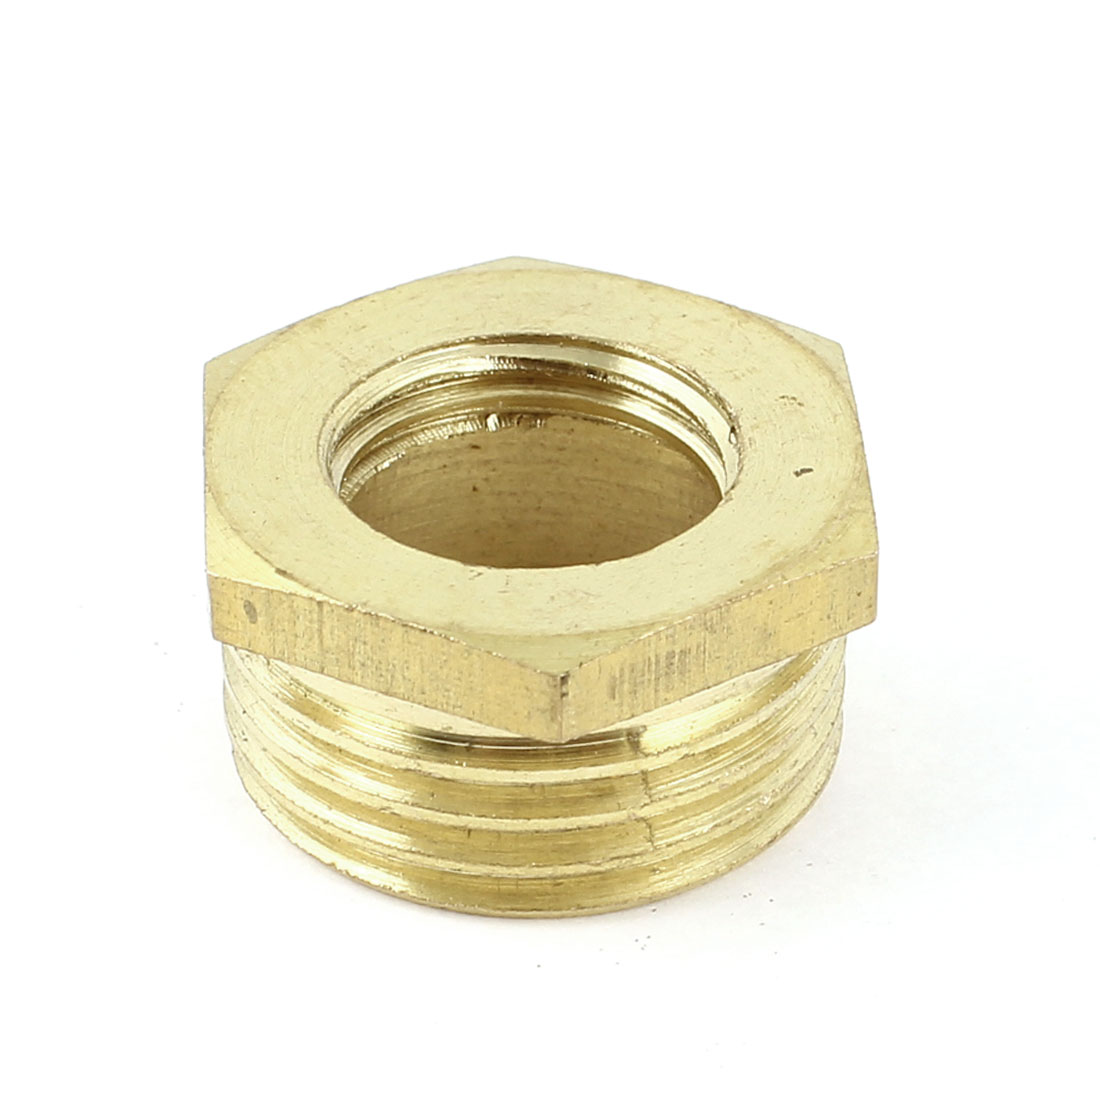 1/2 PT Male to 1/4 PT Female Hex Thread Brass Bushing Piping Connector Adapter